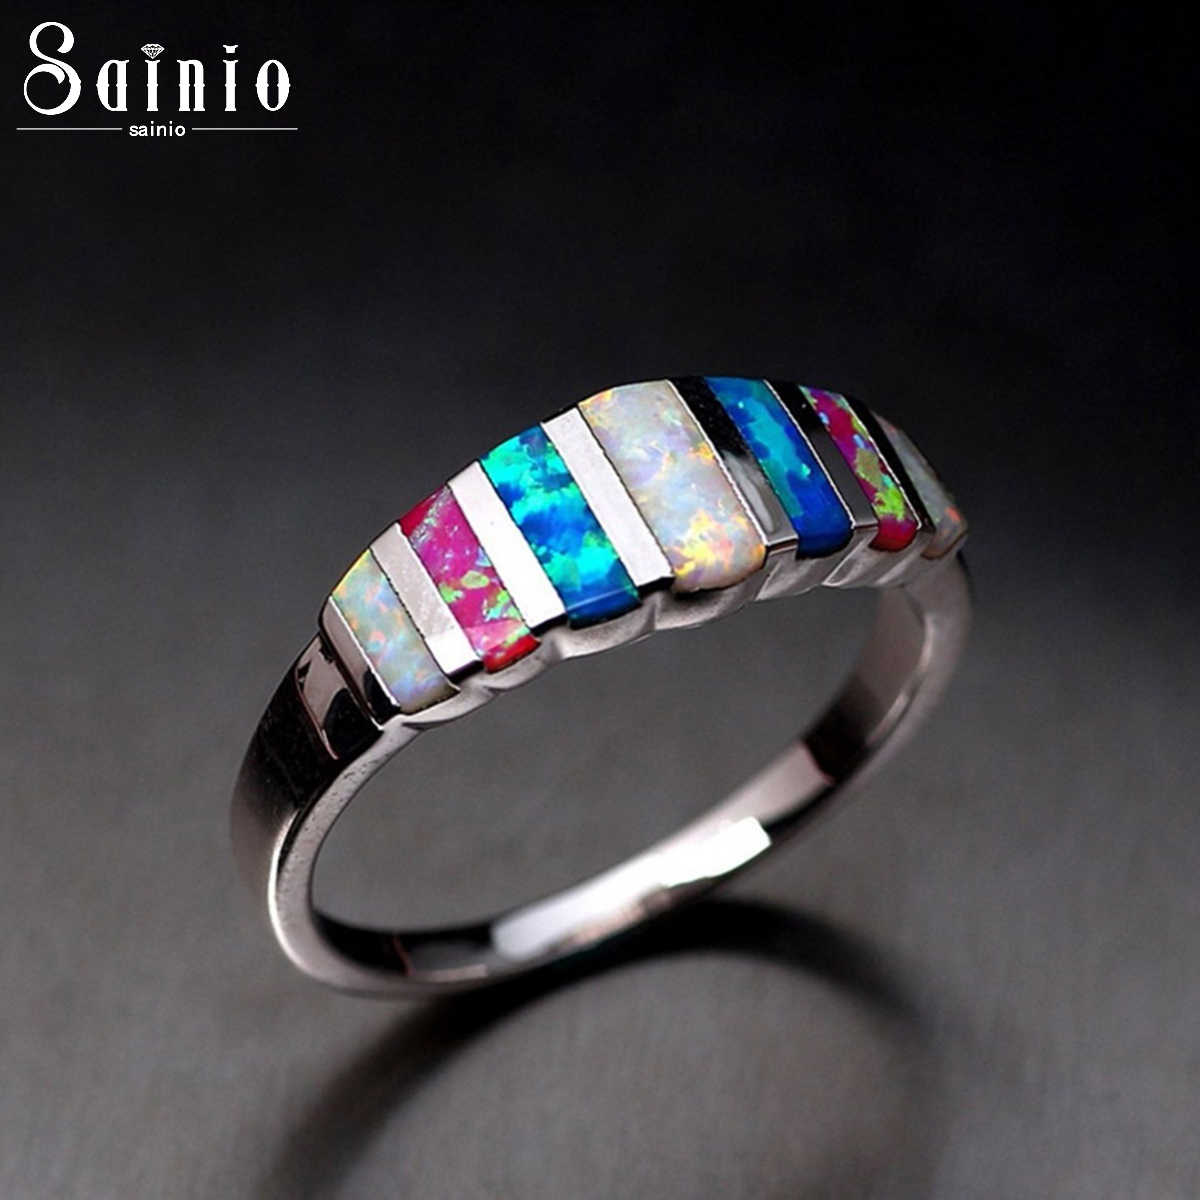 Luxury Rainbow Mixed Color Stones Crystal Finger Ring For Women Multi-color Natural Stone Ring Wedding Engagement Jewelry